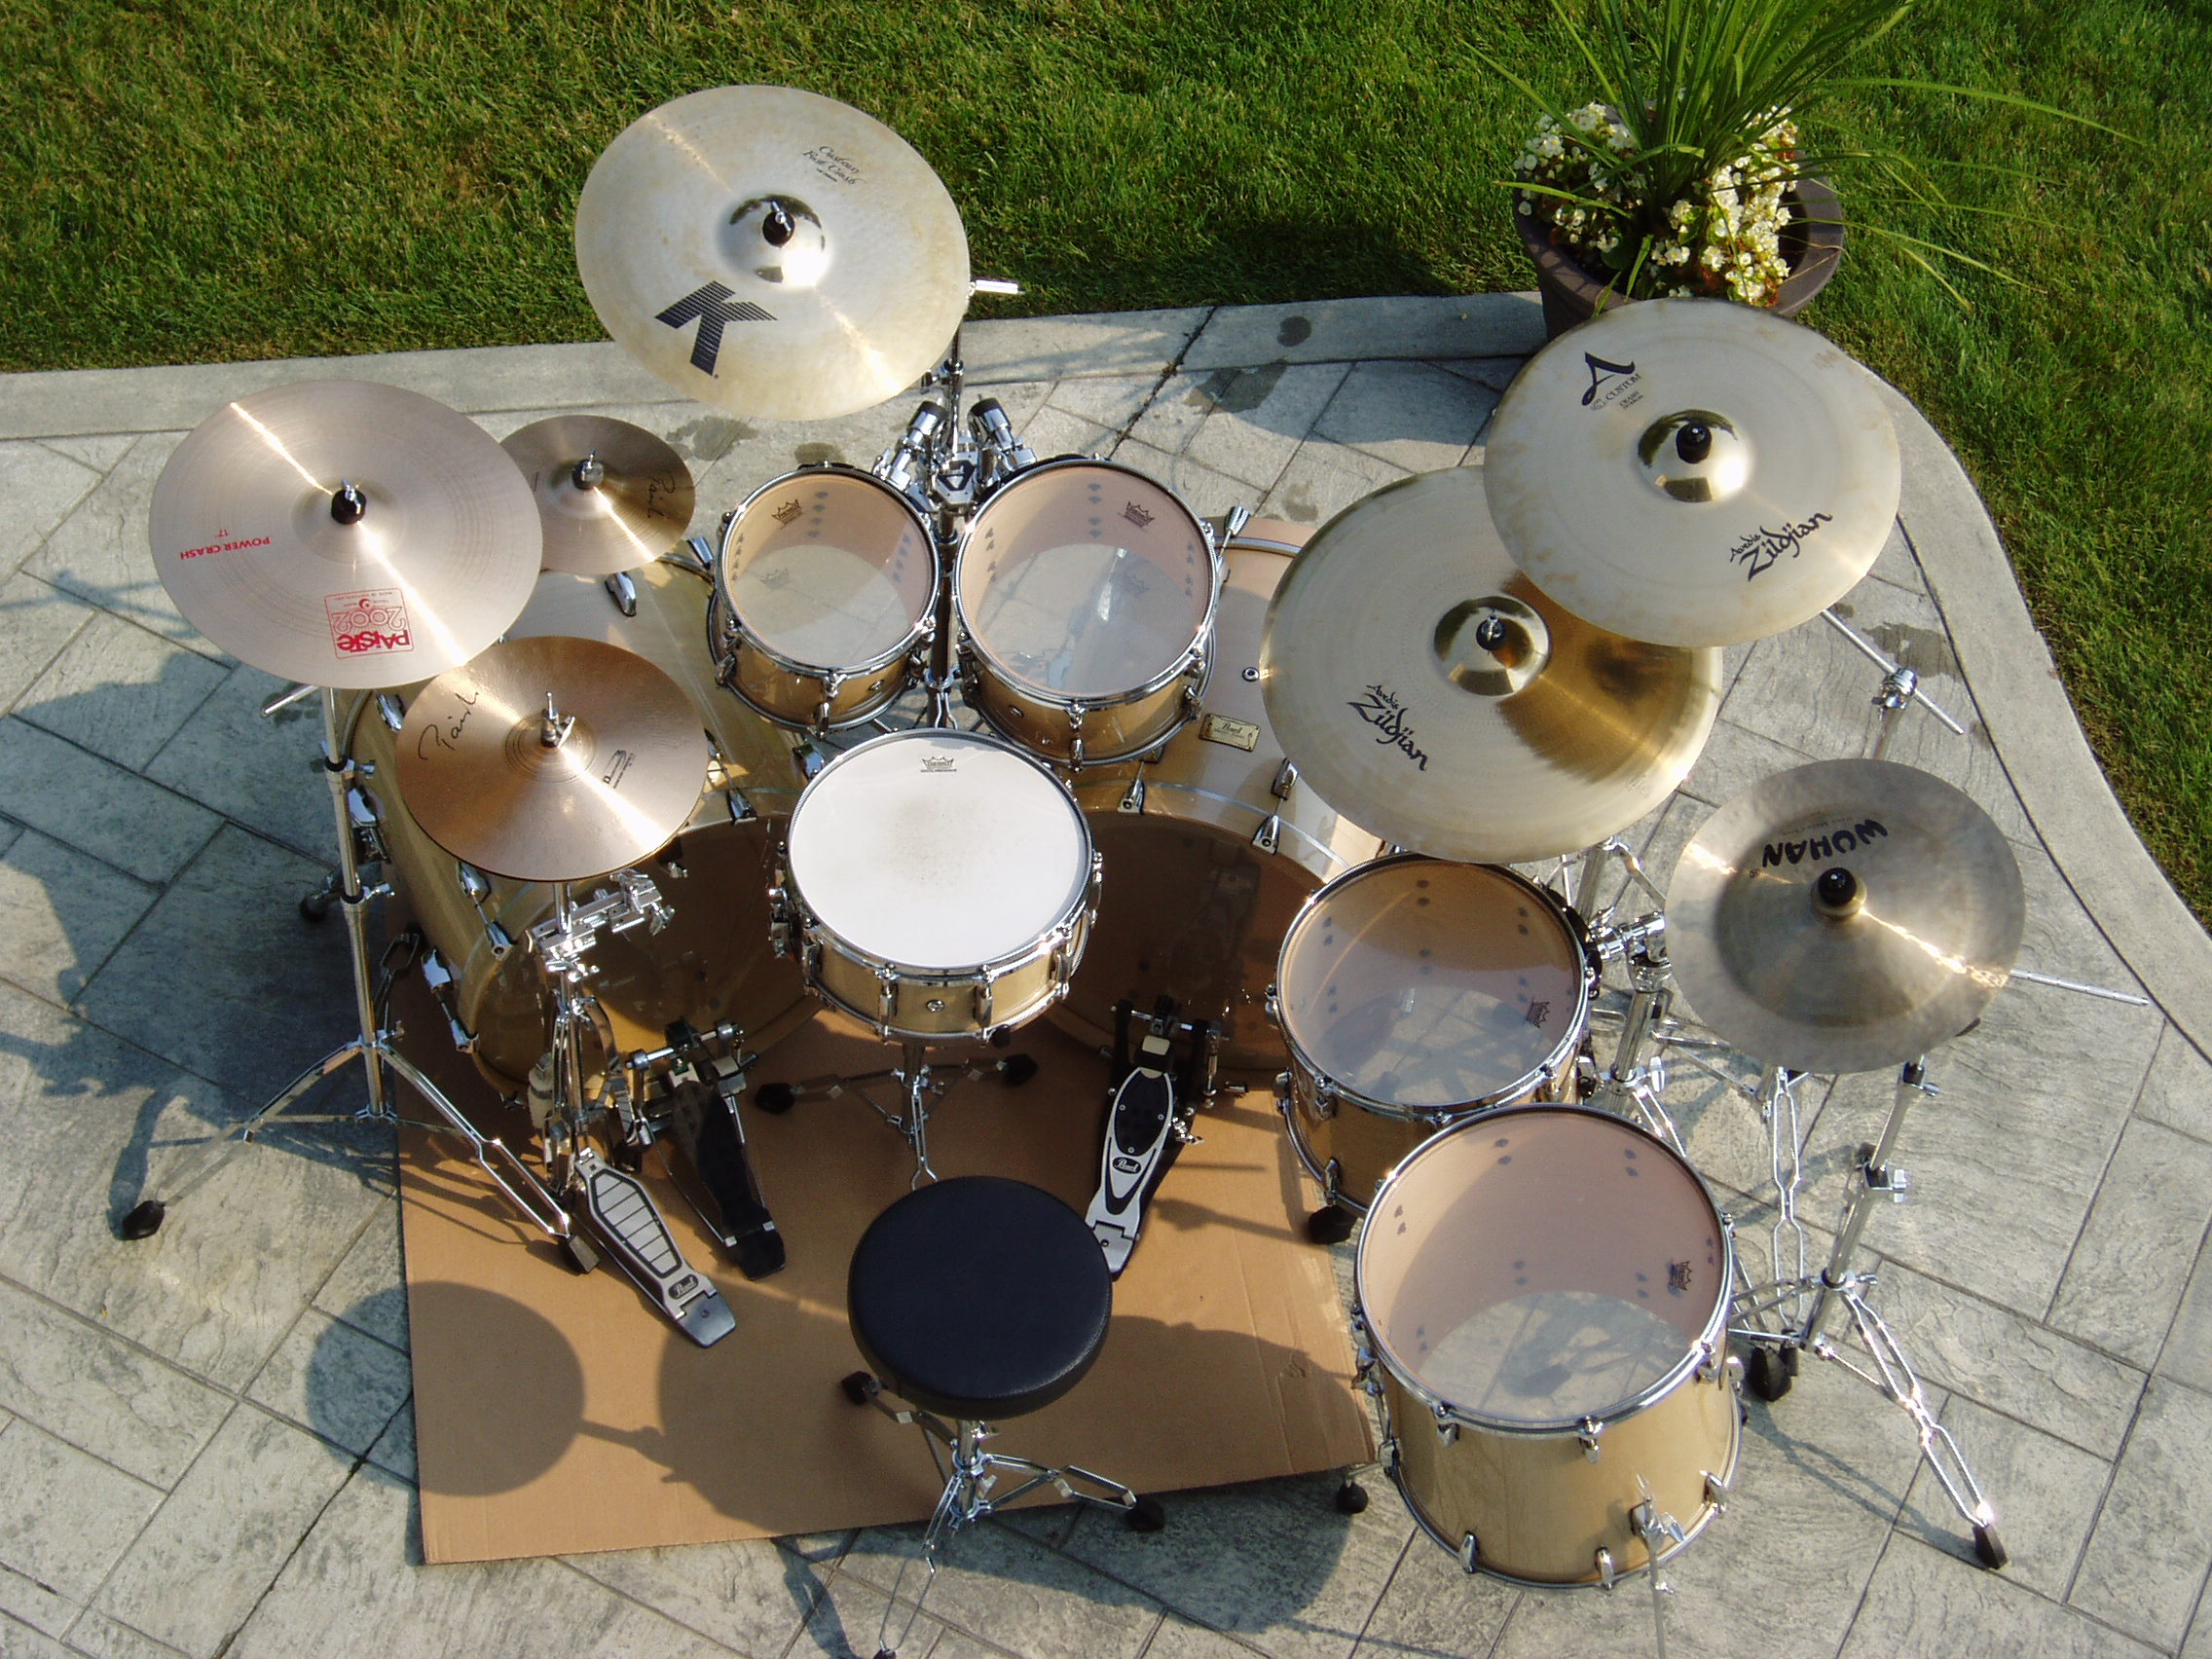 A Seven Piece Kit With Snare Double Bass Drums Two Hanging Toms Floor Hi Hats Ride Cymbal Three Crash Cymbals Splash And China Type